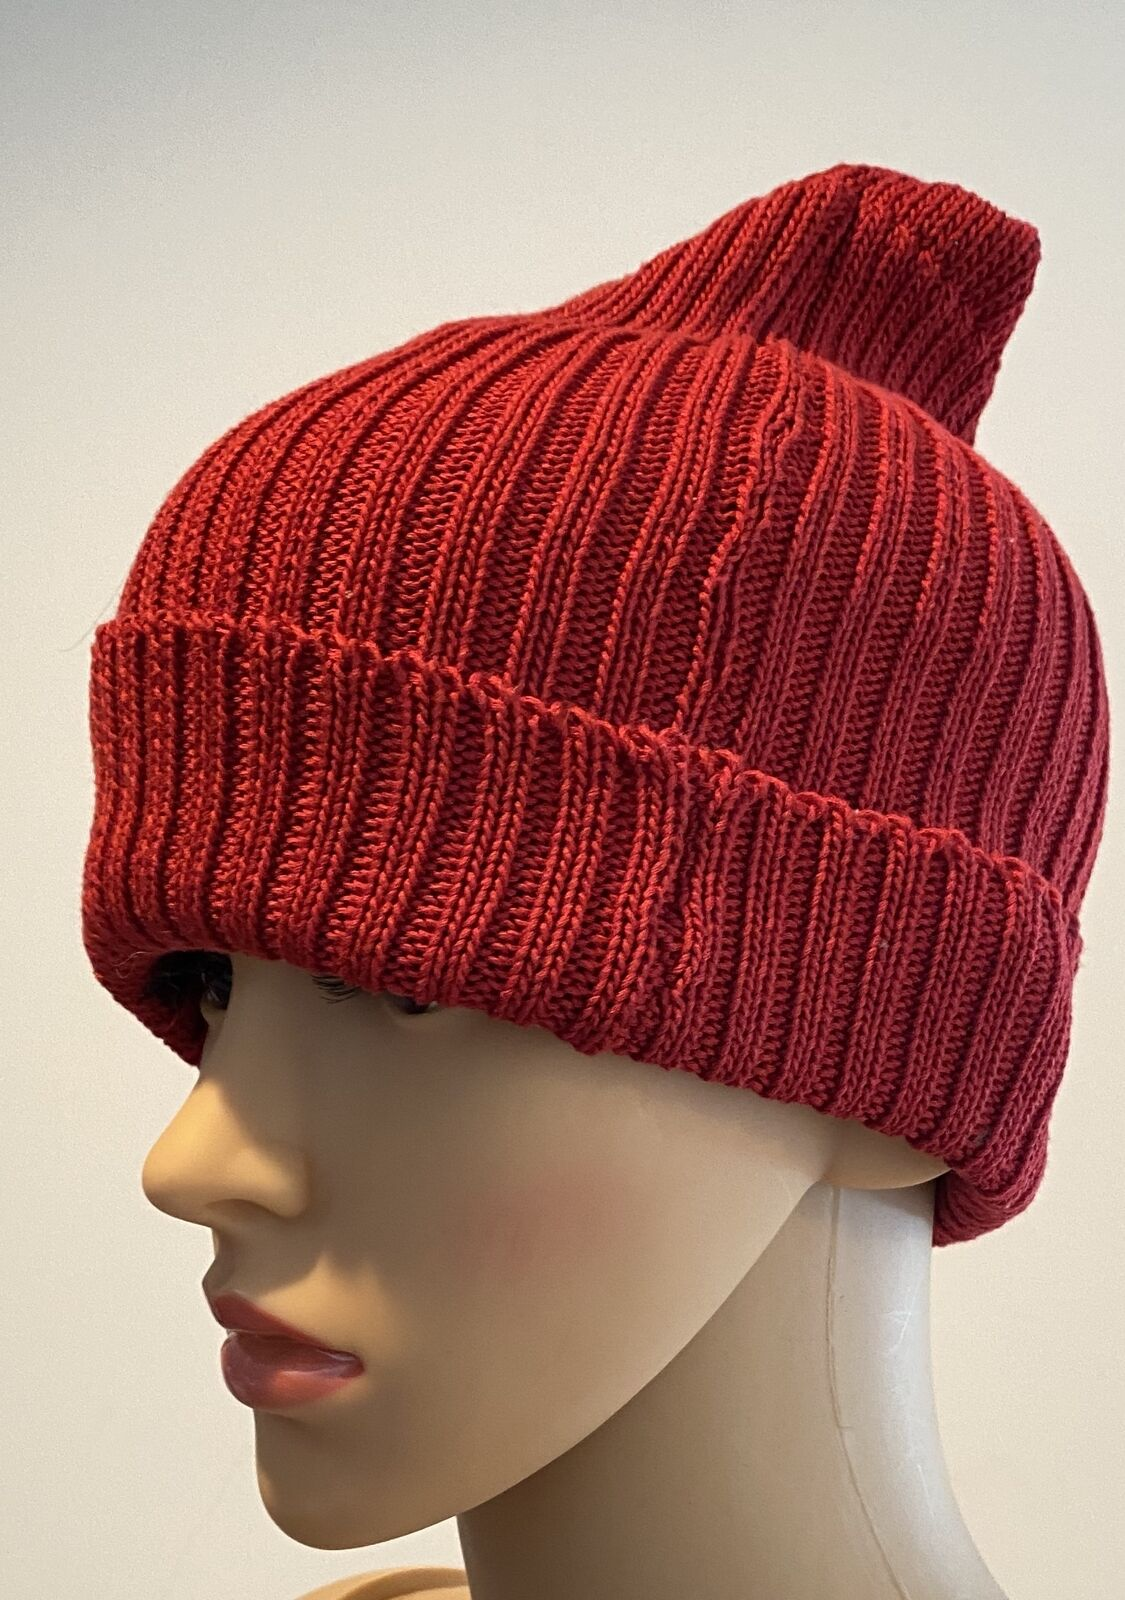 PATRICIA UNDERWOOD KNITS red ribbed beanie hat  - image 2